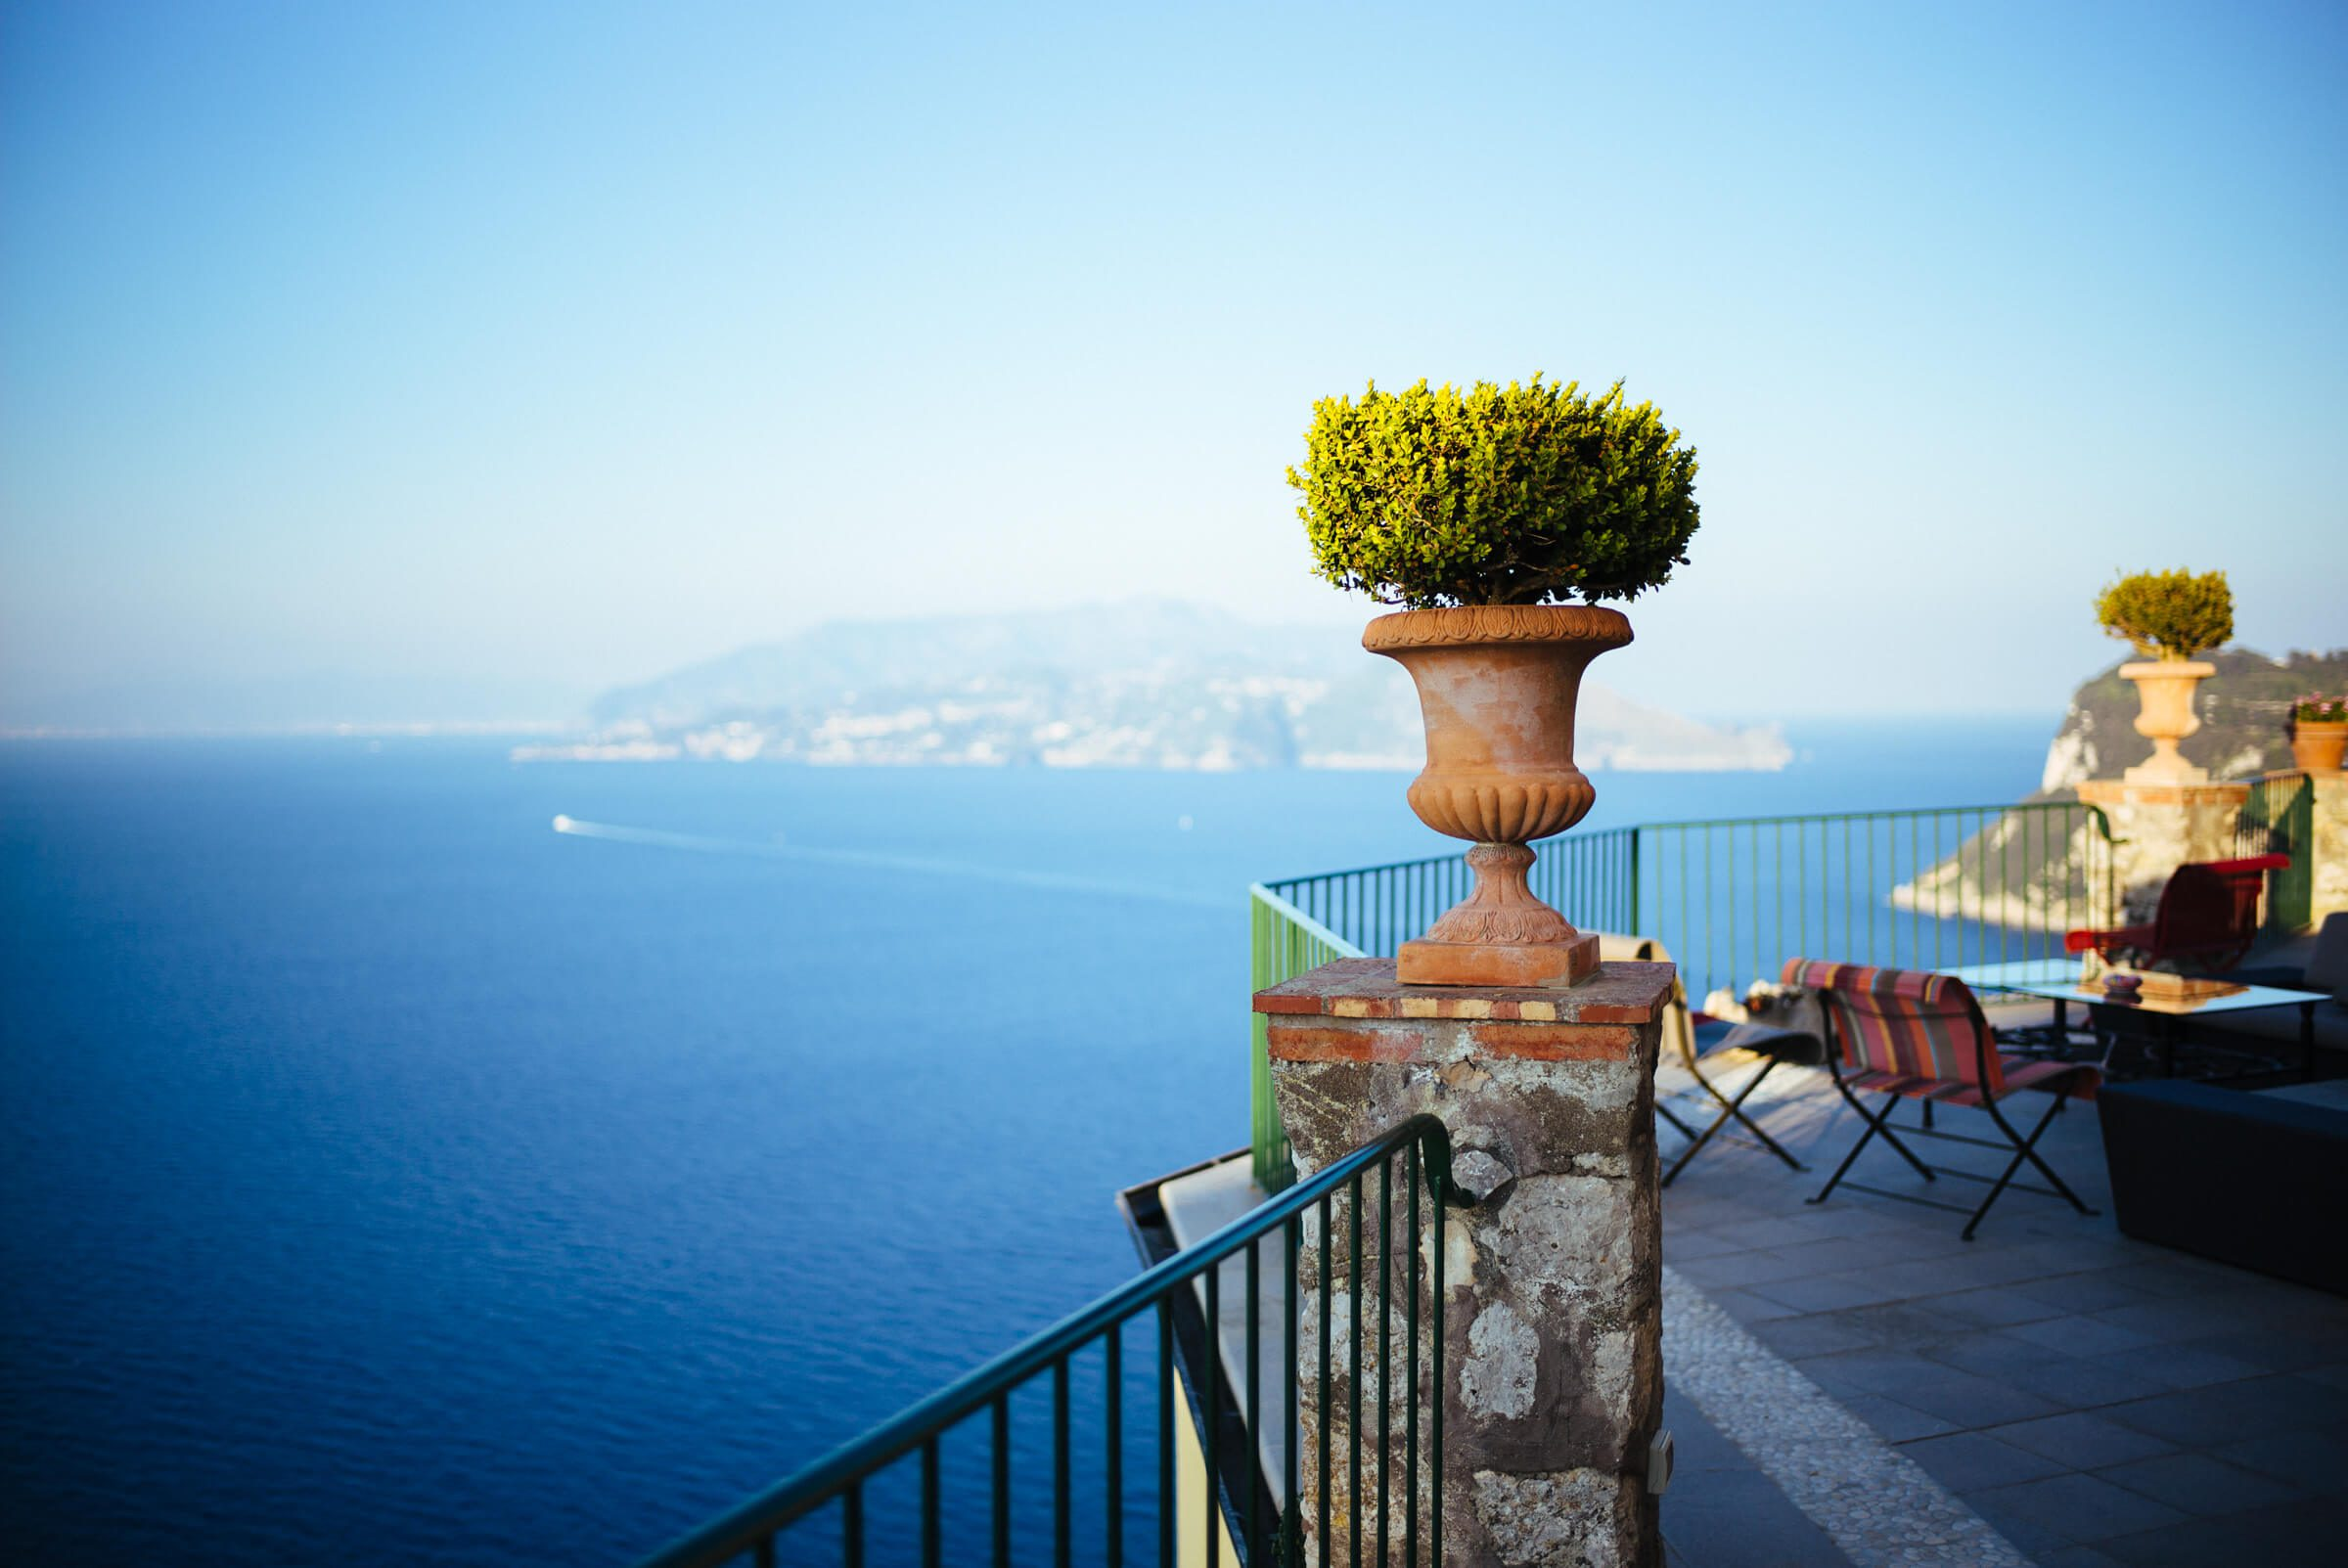 Overlook on the balcony off Hotel Caesar Augustus Capri Italy, The Taste Edit